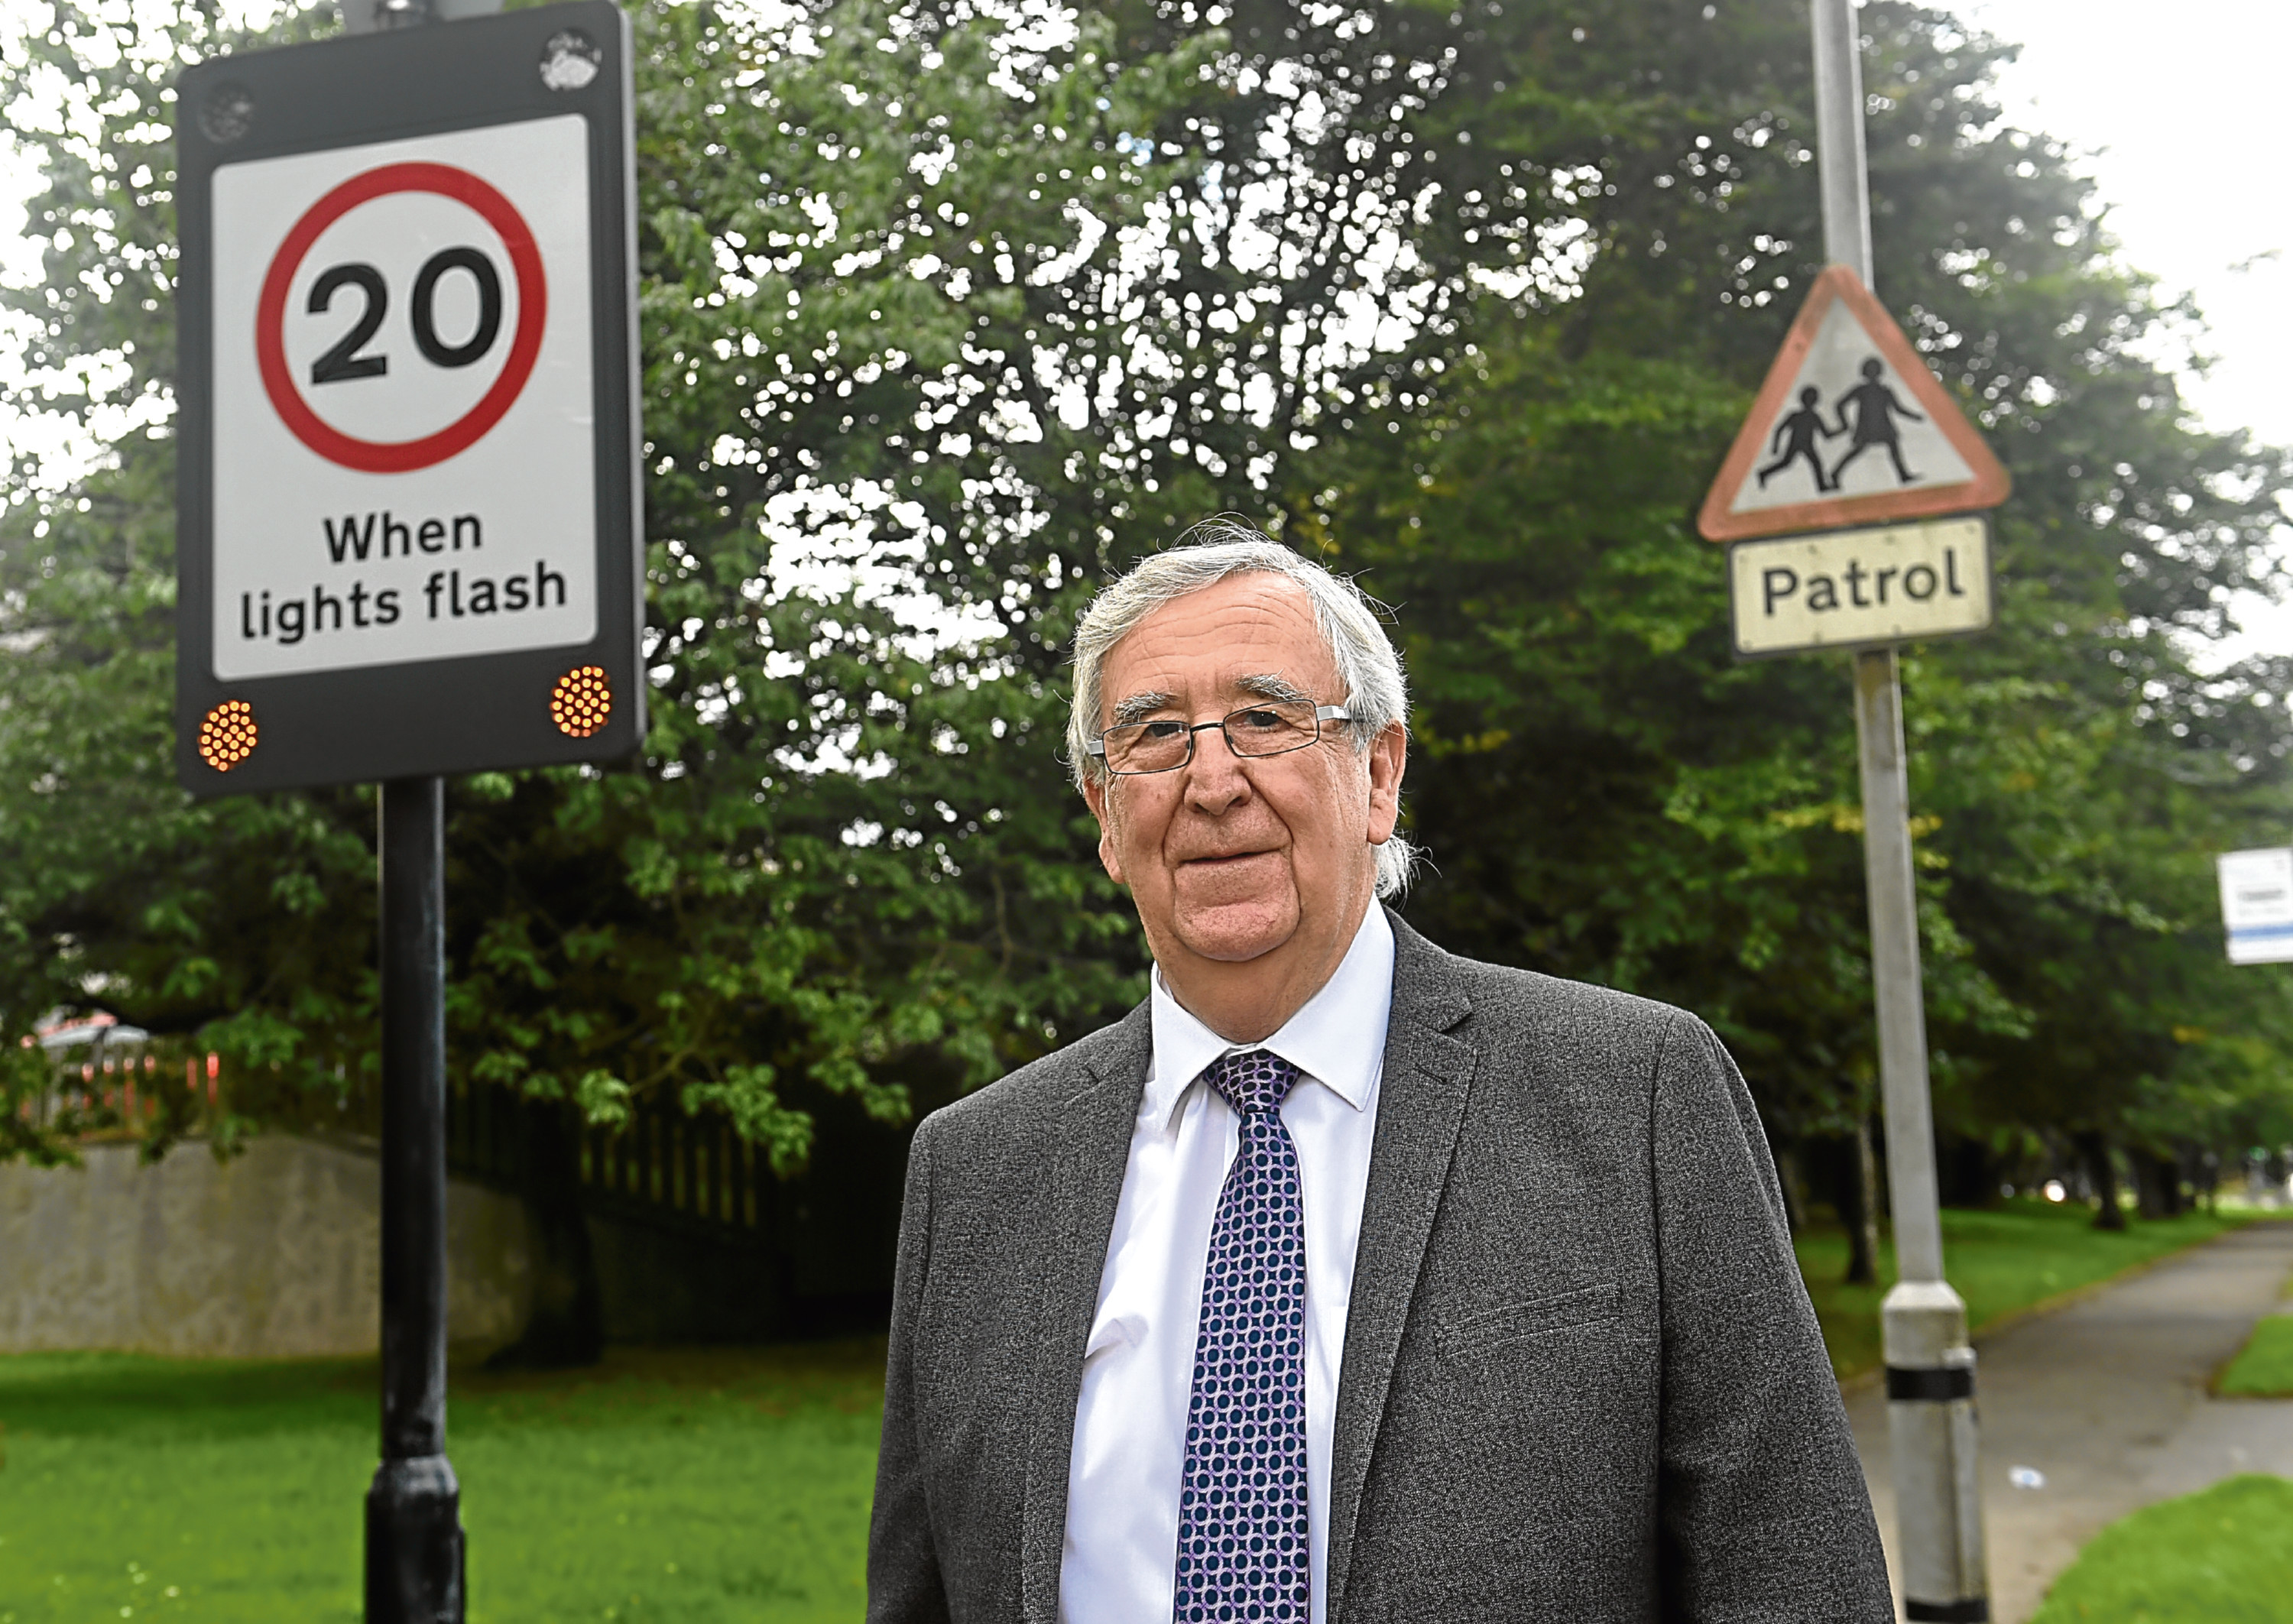 The 20mph sign outside Glashieburn Primary School has not been working properly for some time now and councillor wants to urge drivers to check their speed around the school.  Pictured is Councillor John Reynolds. Picture by HEATHER FOWLIE